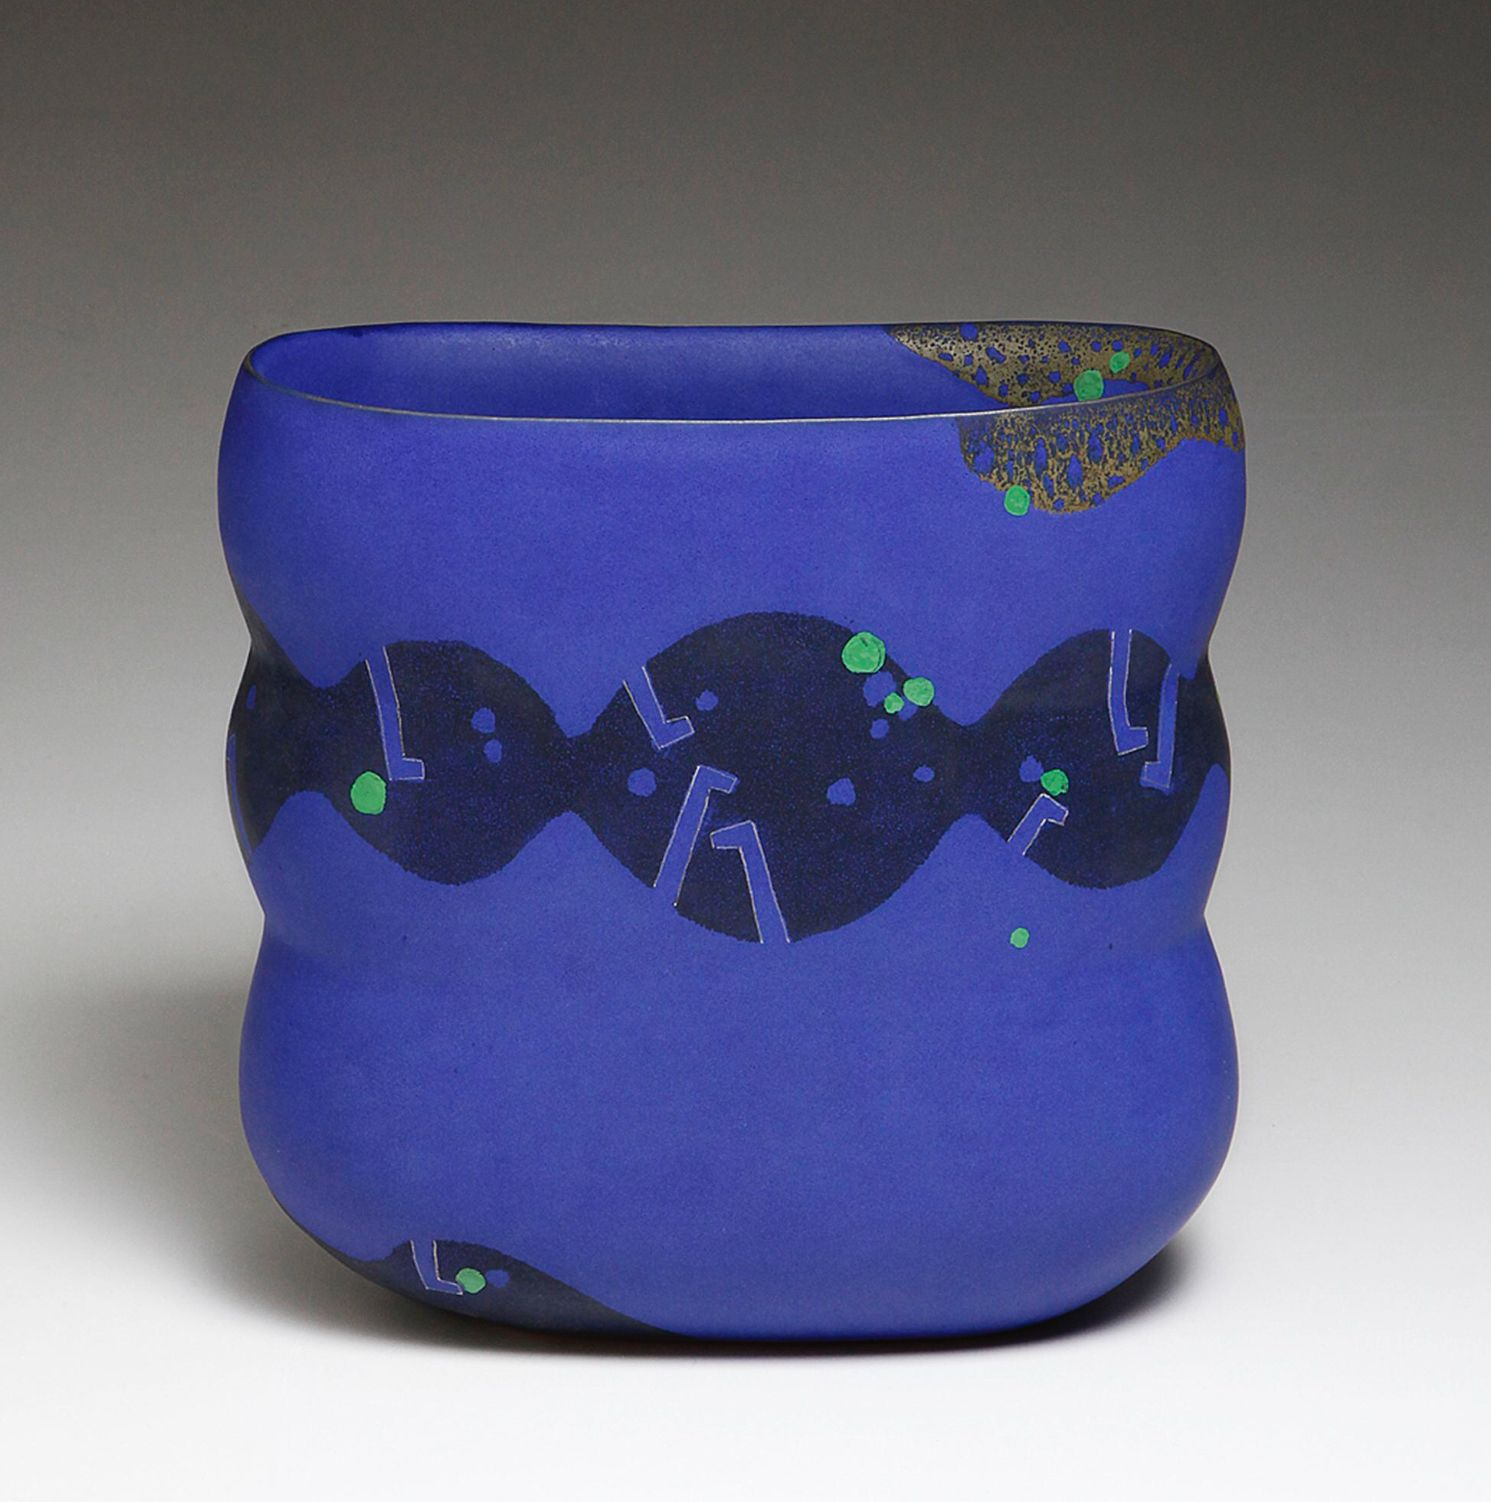 WORK 16-4; Triple lobed, slightly flattened sculptural vase, decorated with a band of circles with key patterning in rich blue over black with dots in green chartreuse, 2016